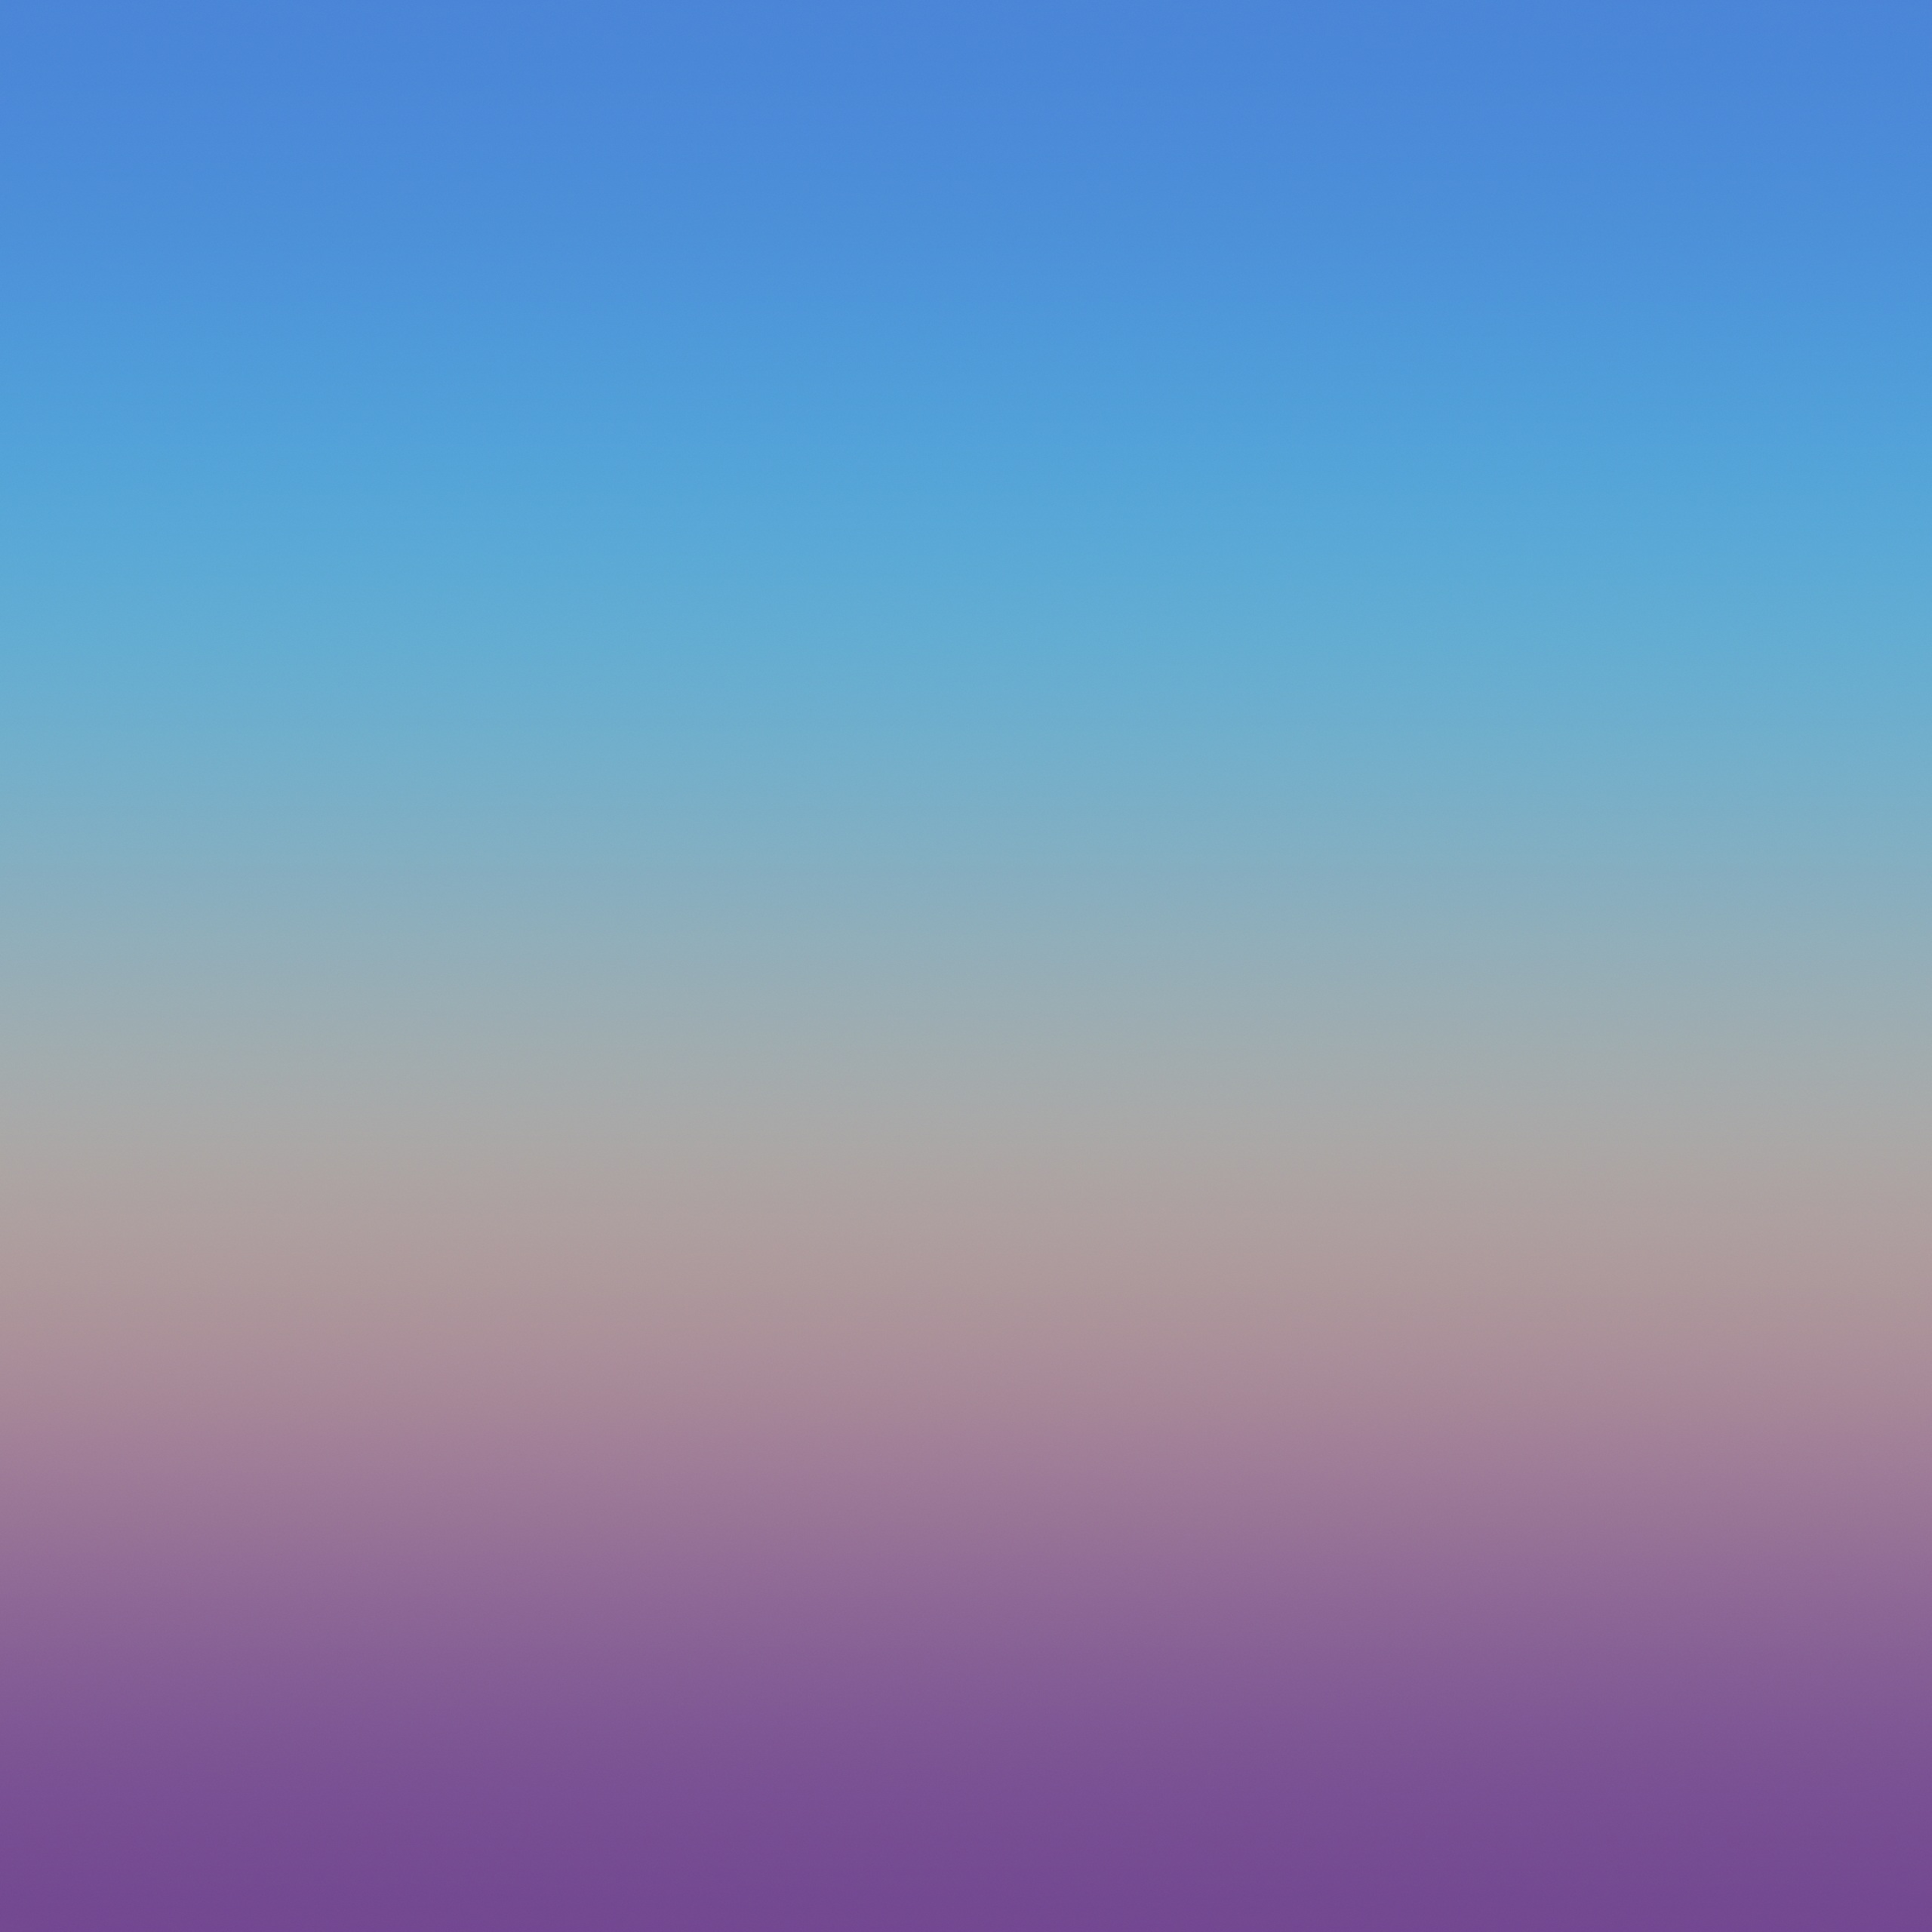 samsung note 9 wallpaper hd: Galaxy Note 9 Simple, HD Abstract, 4k Wallpapers, Images